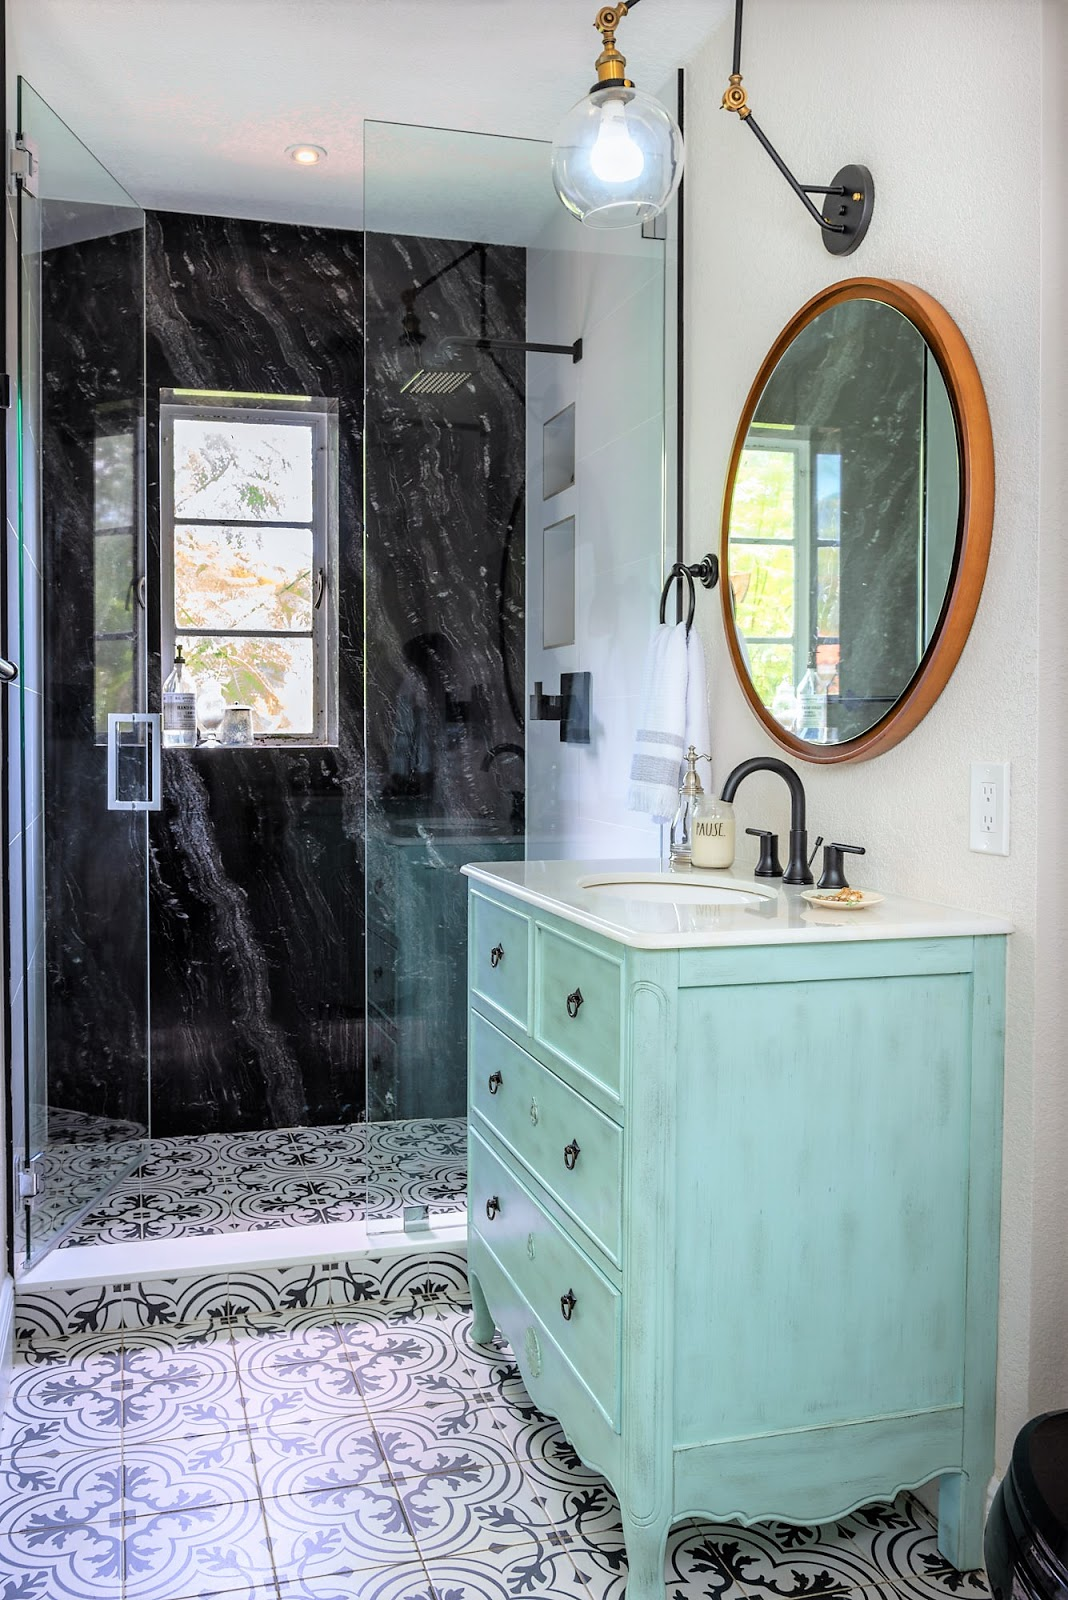 Live Laugh Decorate: Anatomy of a Bathroom Renovation